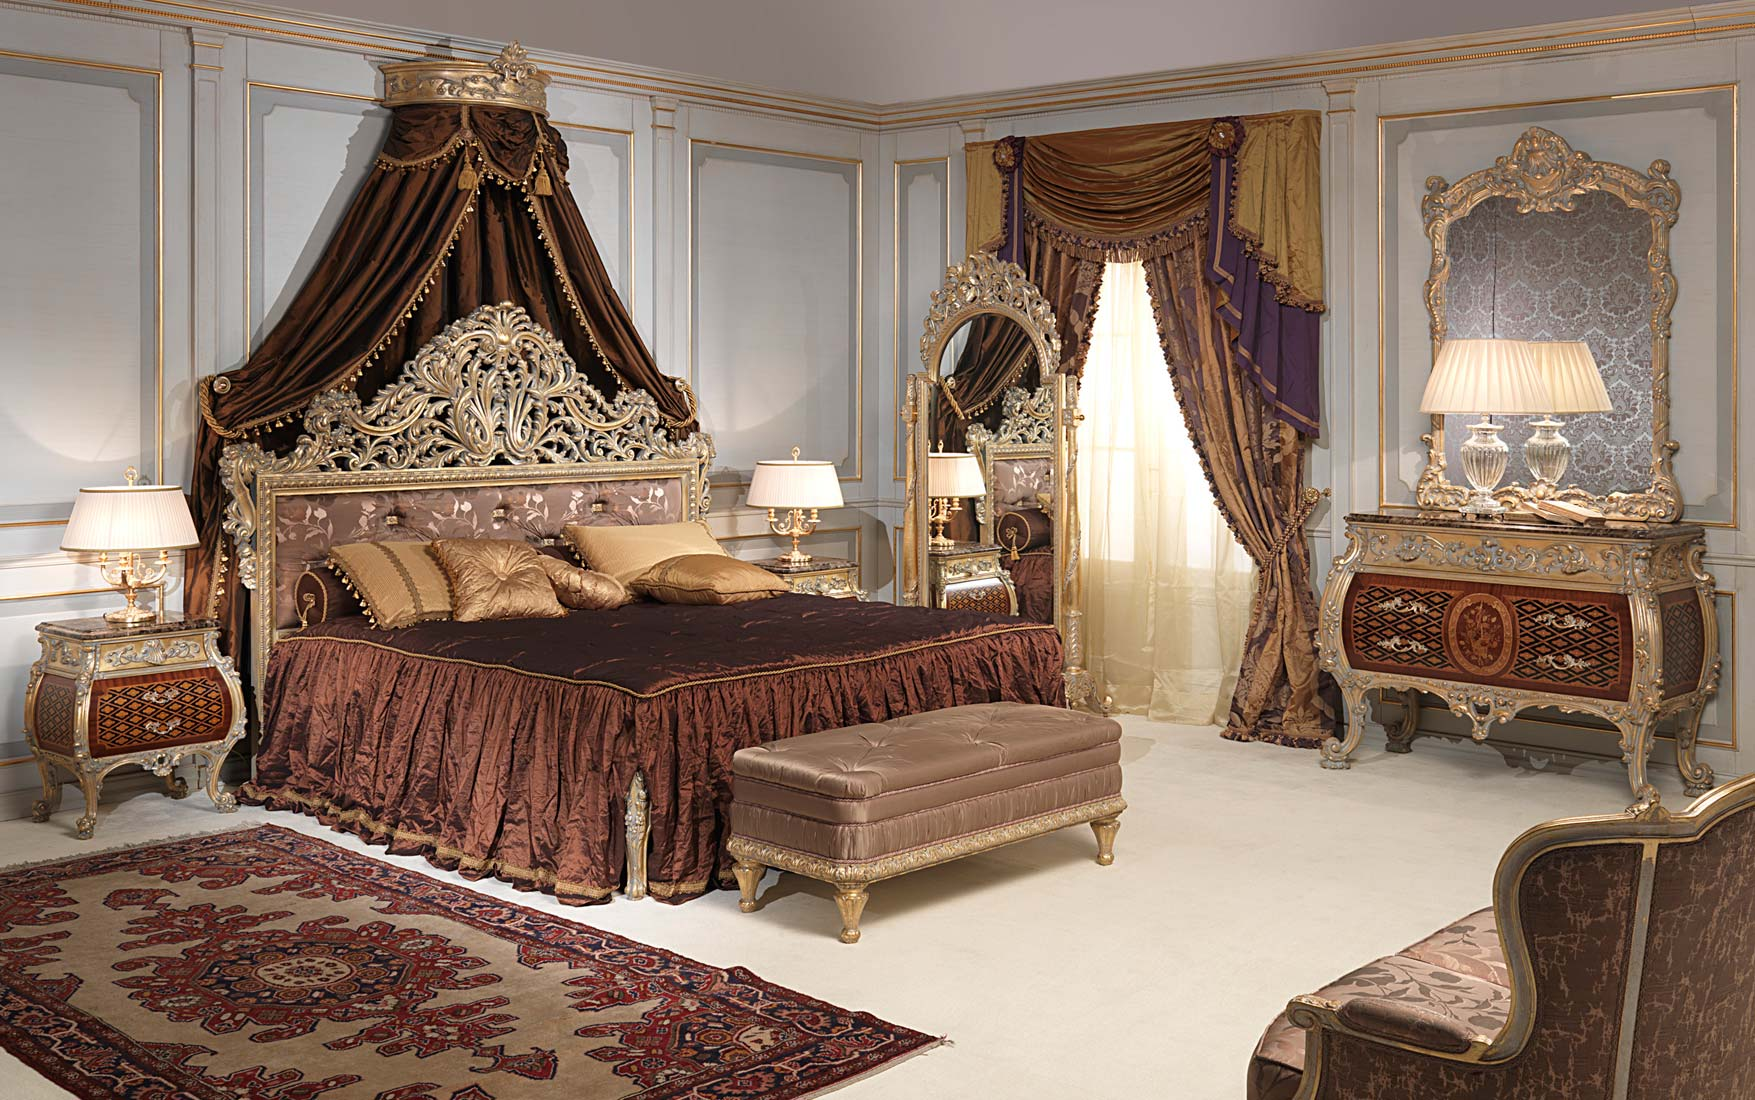 Classic emperador gold bedroom in louis xv style for Classic white bedroom